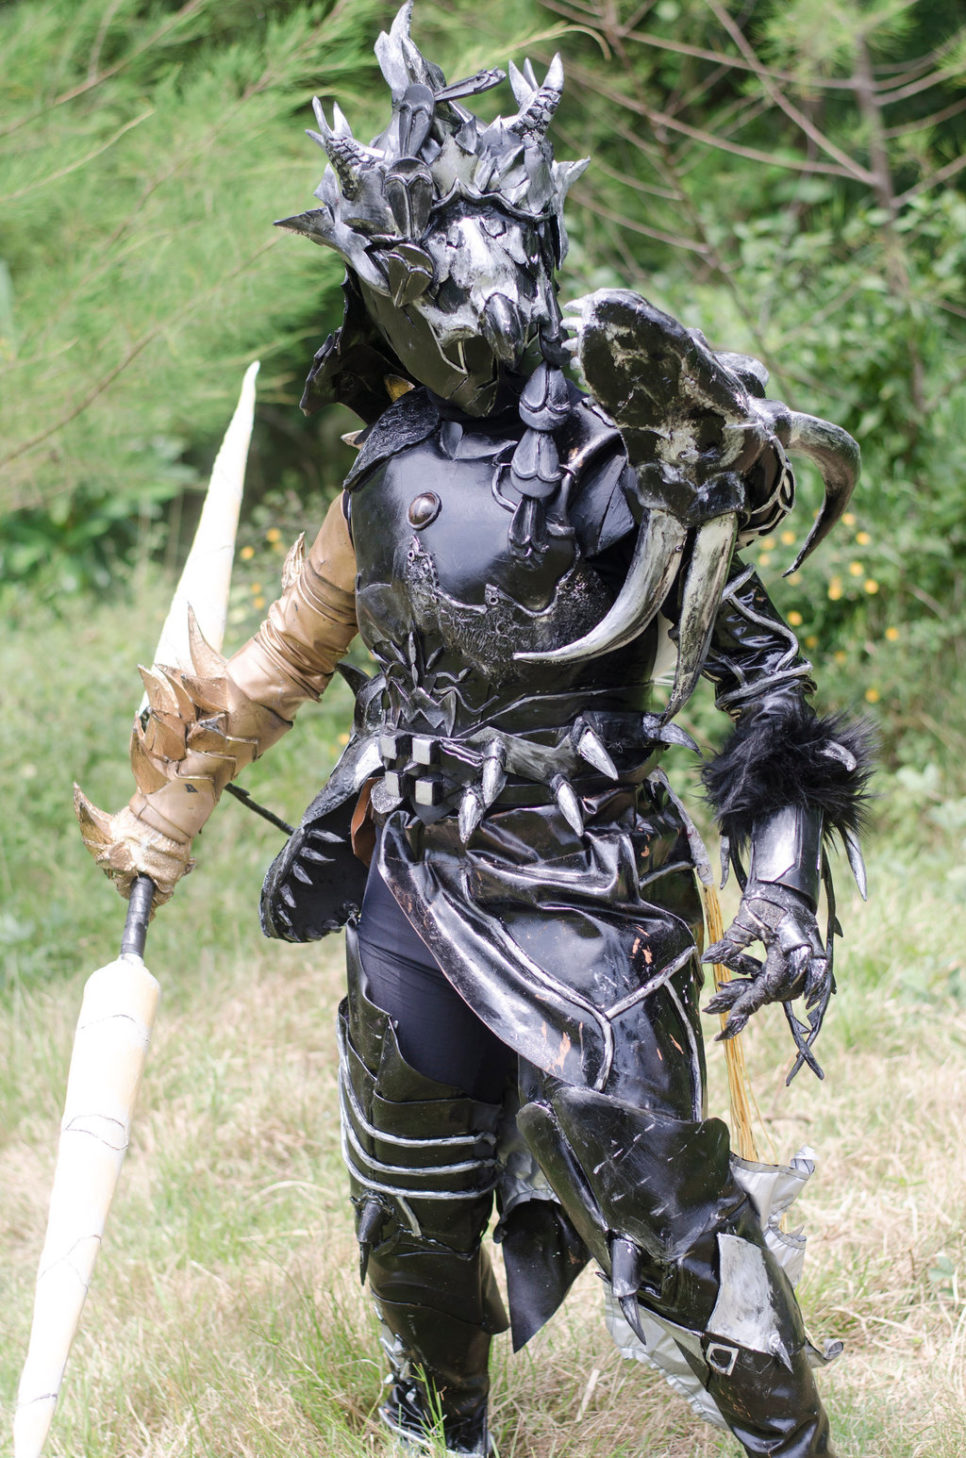 Drago Knight Hunter Z z Kamen Rider - czas na cosplay!